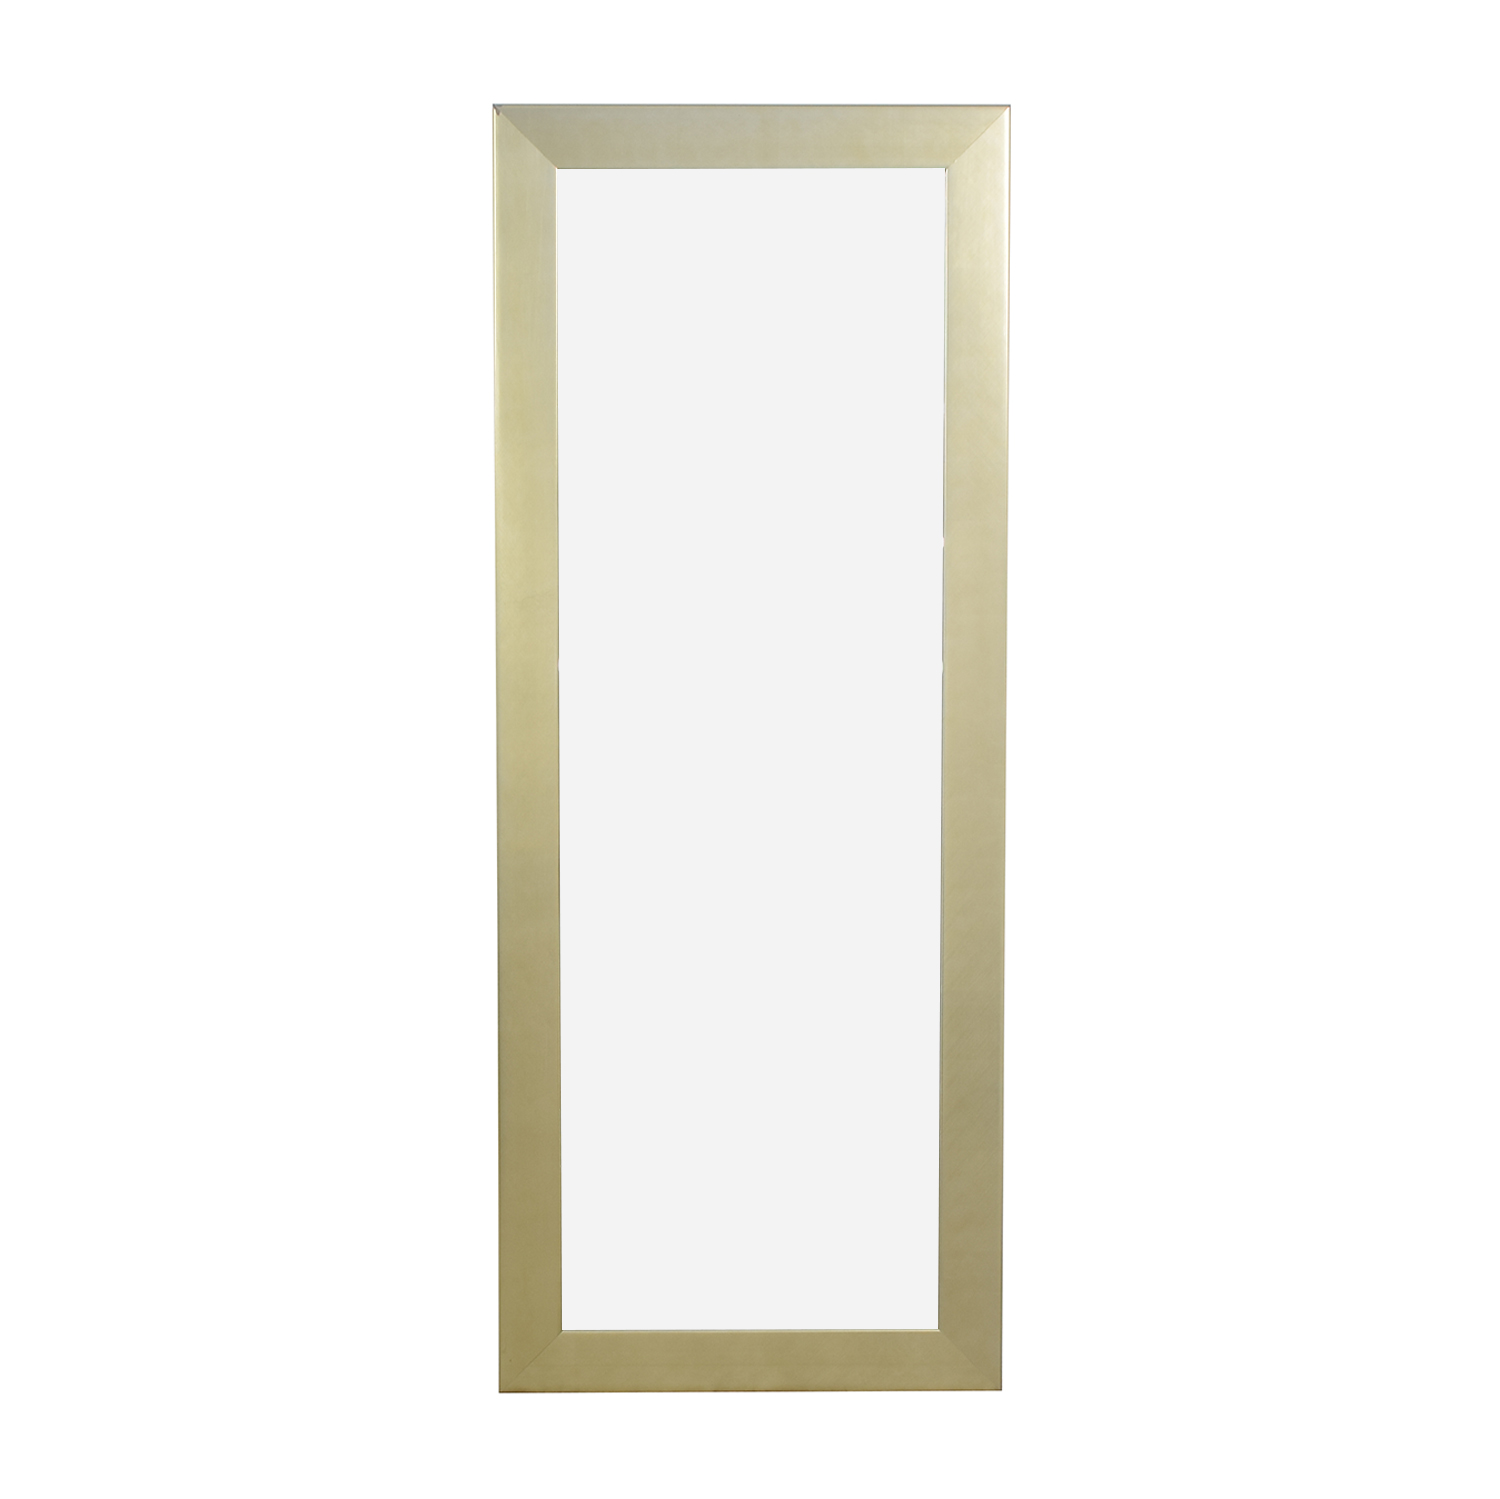 Gold Framed Wall Mirror dimensions